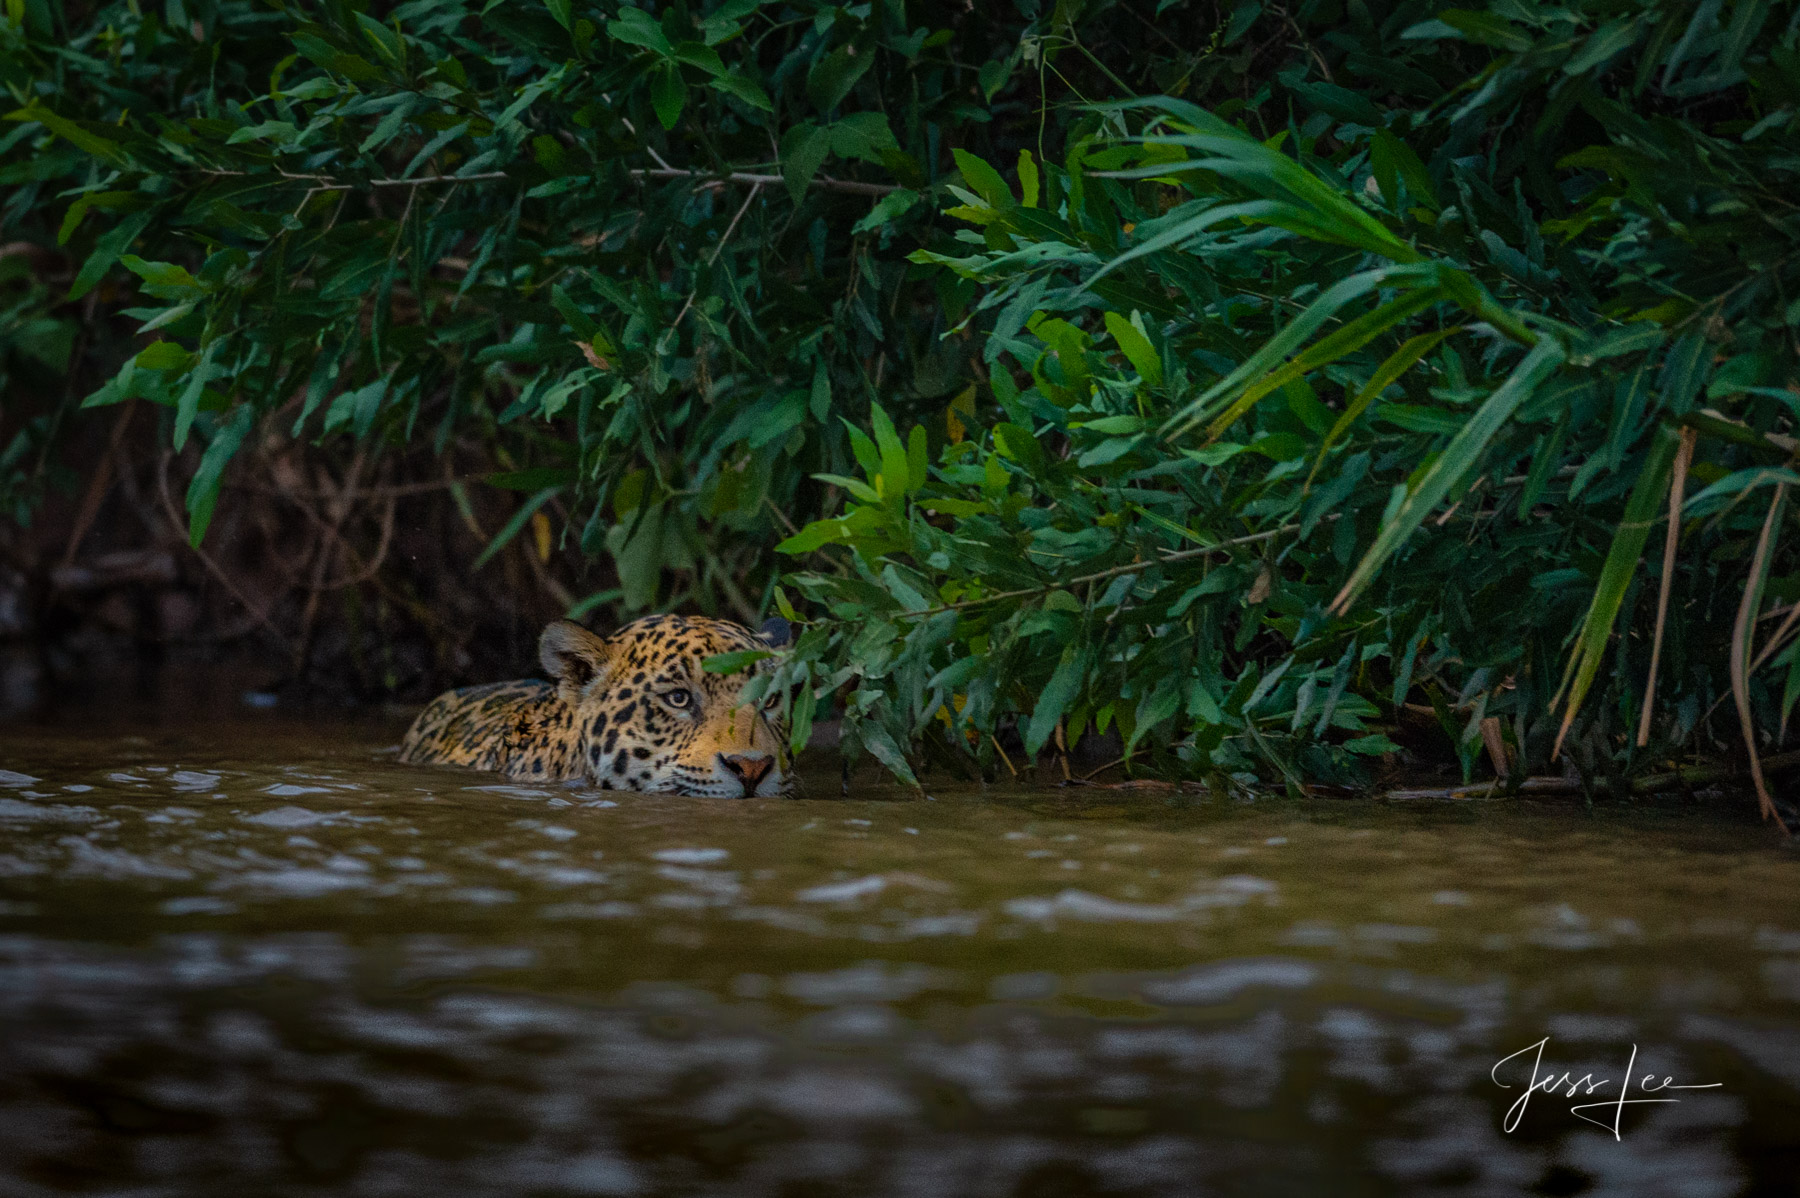 Fine art Jaguar print limited edition of 300 luxury prints by Jess Lee. All photographs copyright © Jess Lee